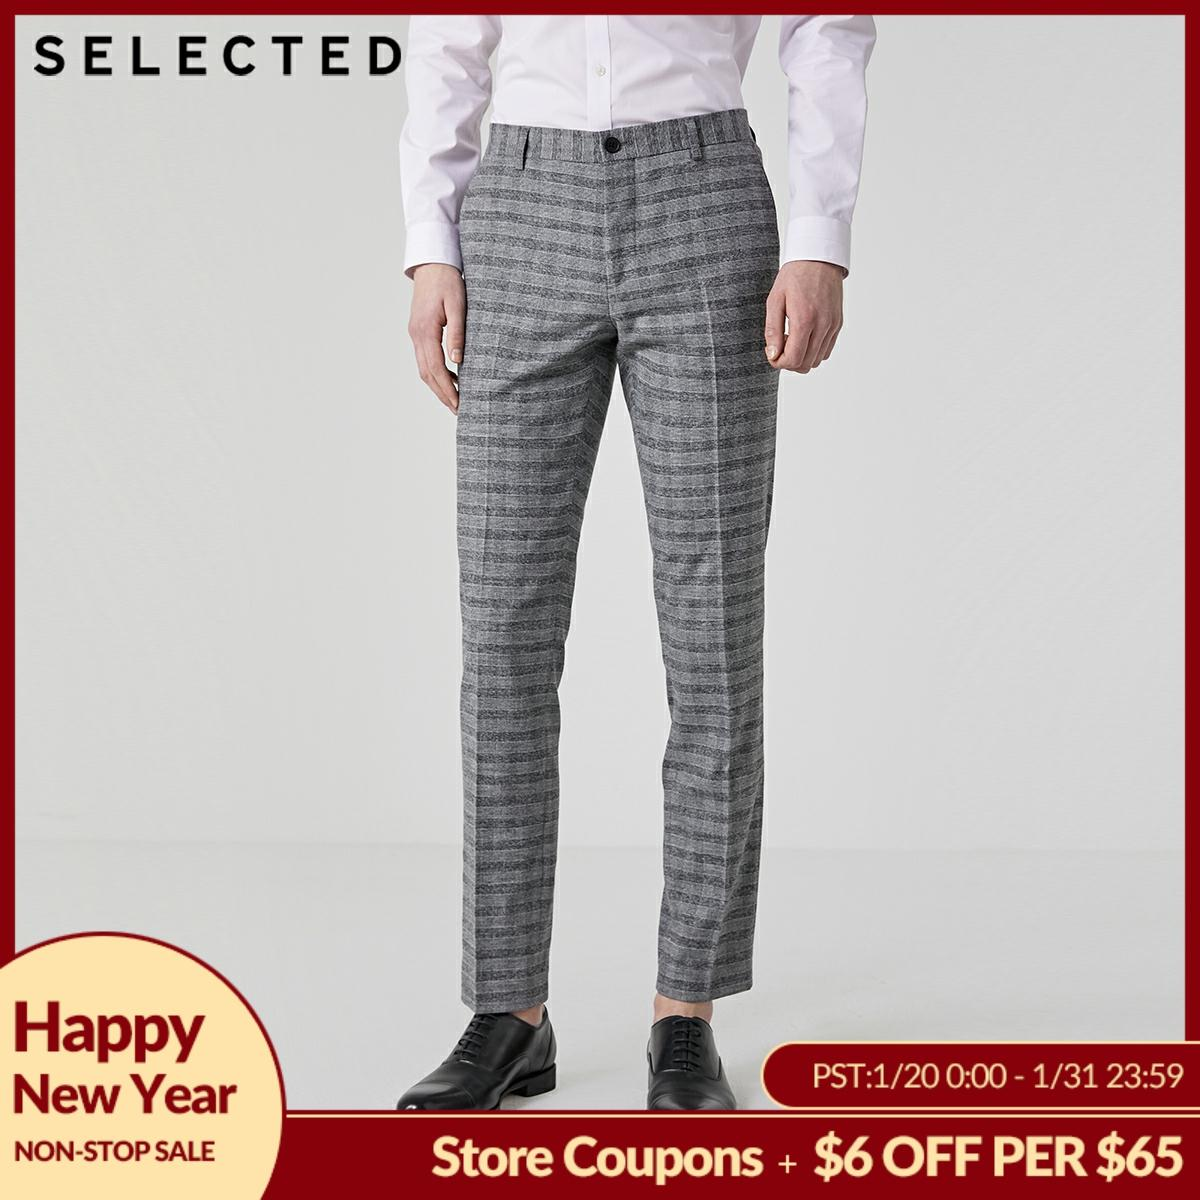 SELECTED Men's Summer Slim Straight Fit Plaid Suit Pants T|41926A504